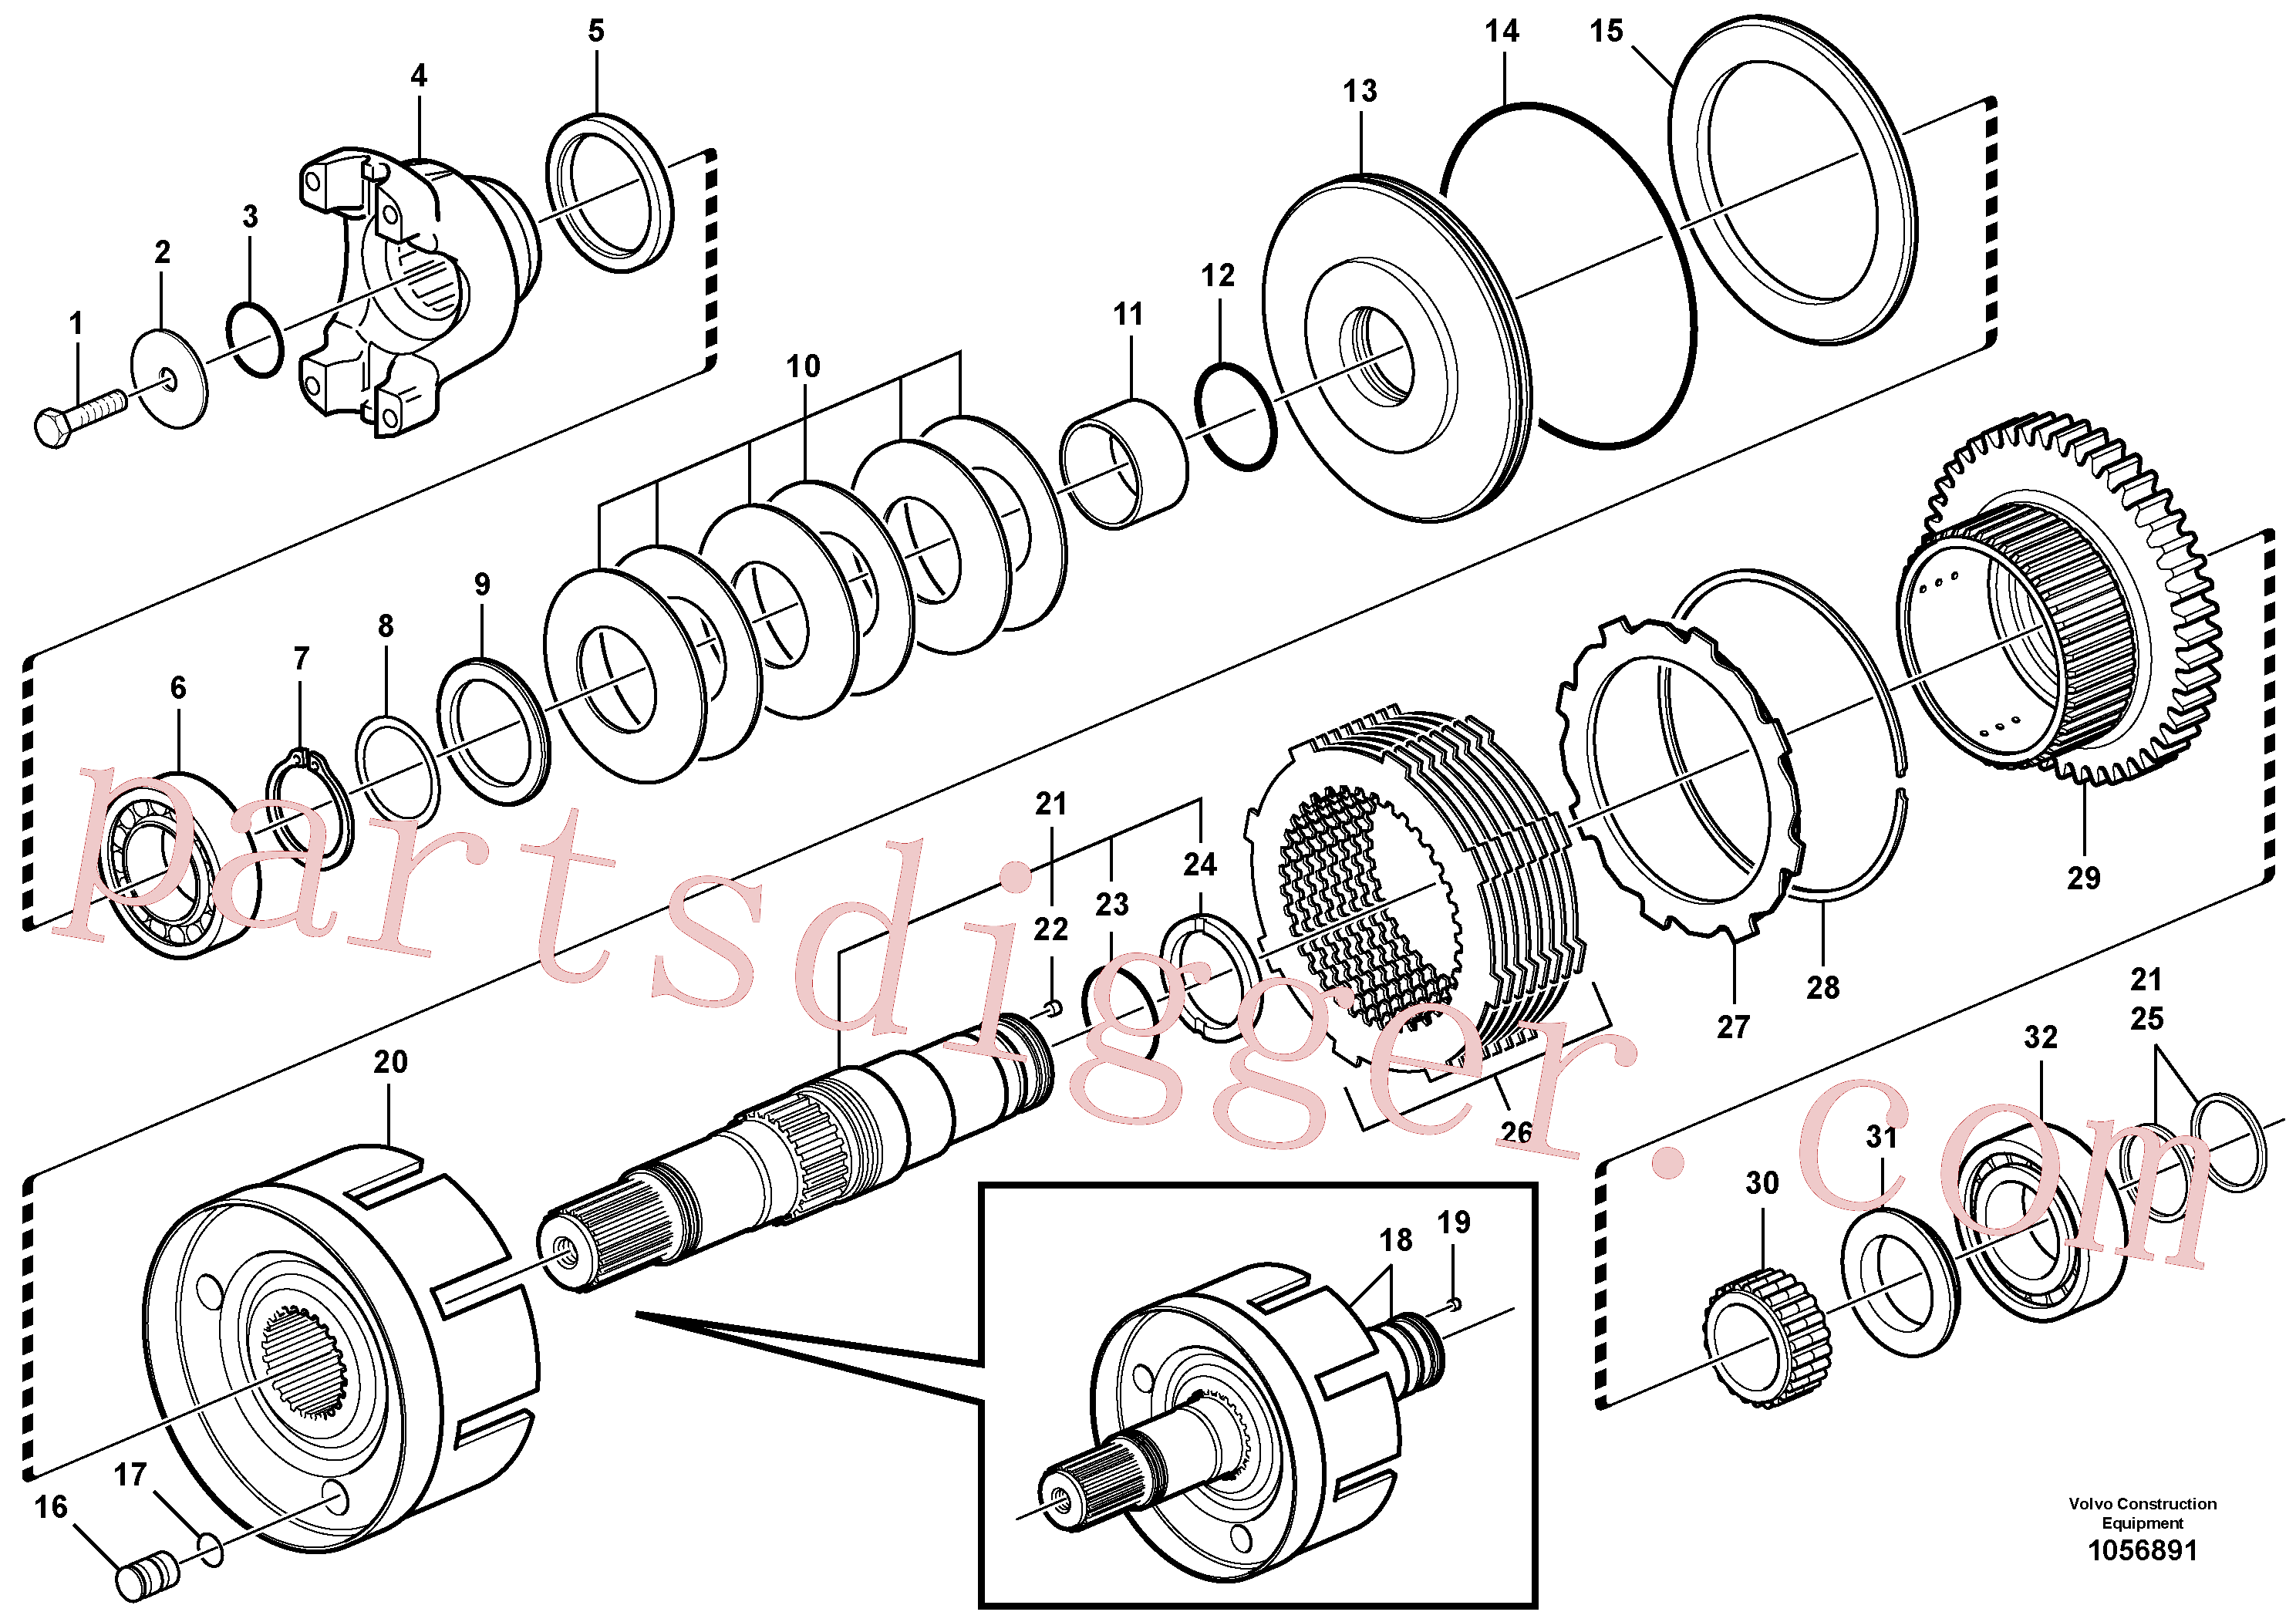 VOE11709144 for Volvo Hydraulic clutch, 4wd(1056891 assembly)